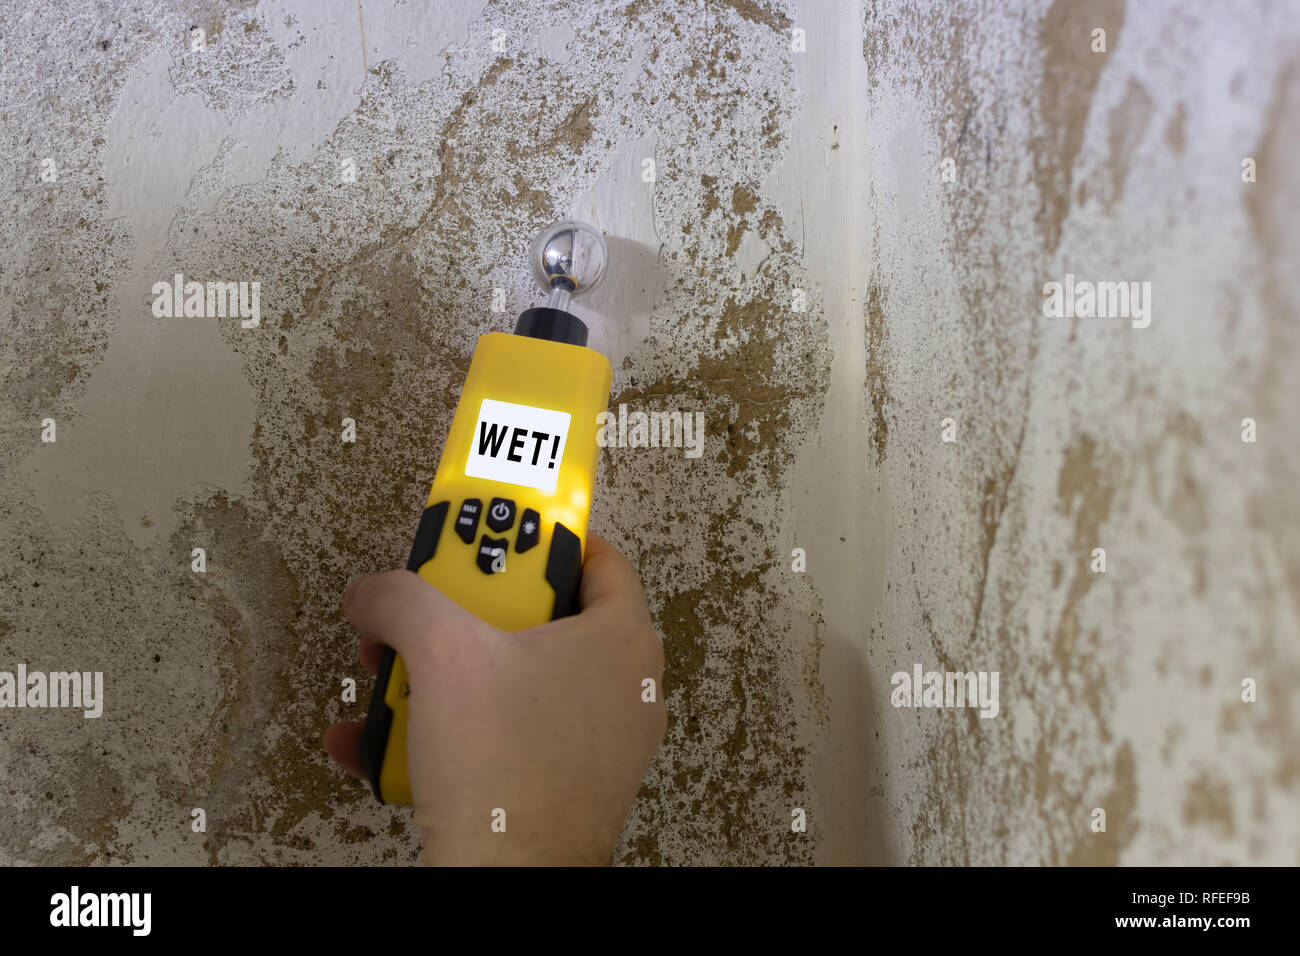 Humidity is measured at a wall in the basement. Instrument indicates a wet wall. - Stock Image